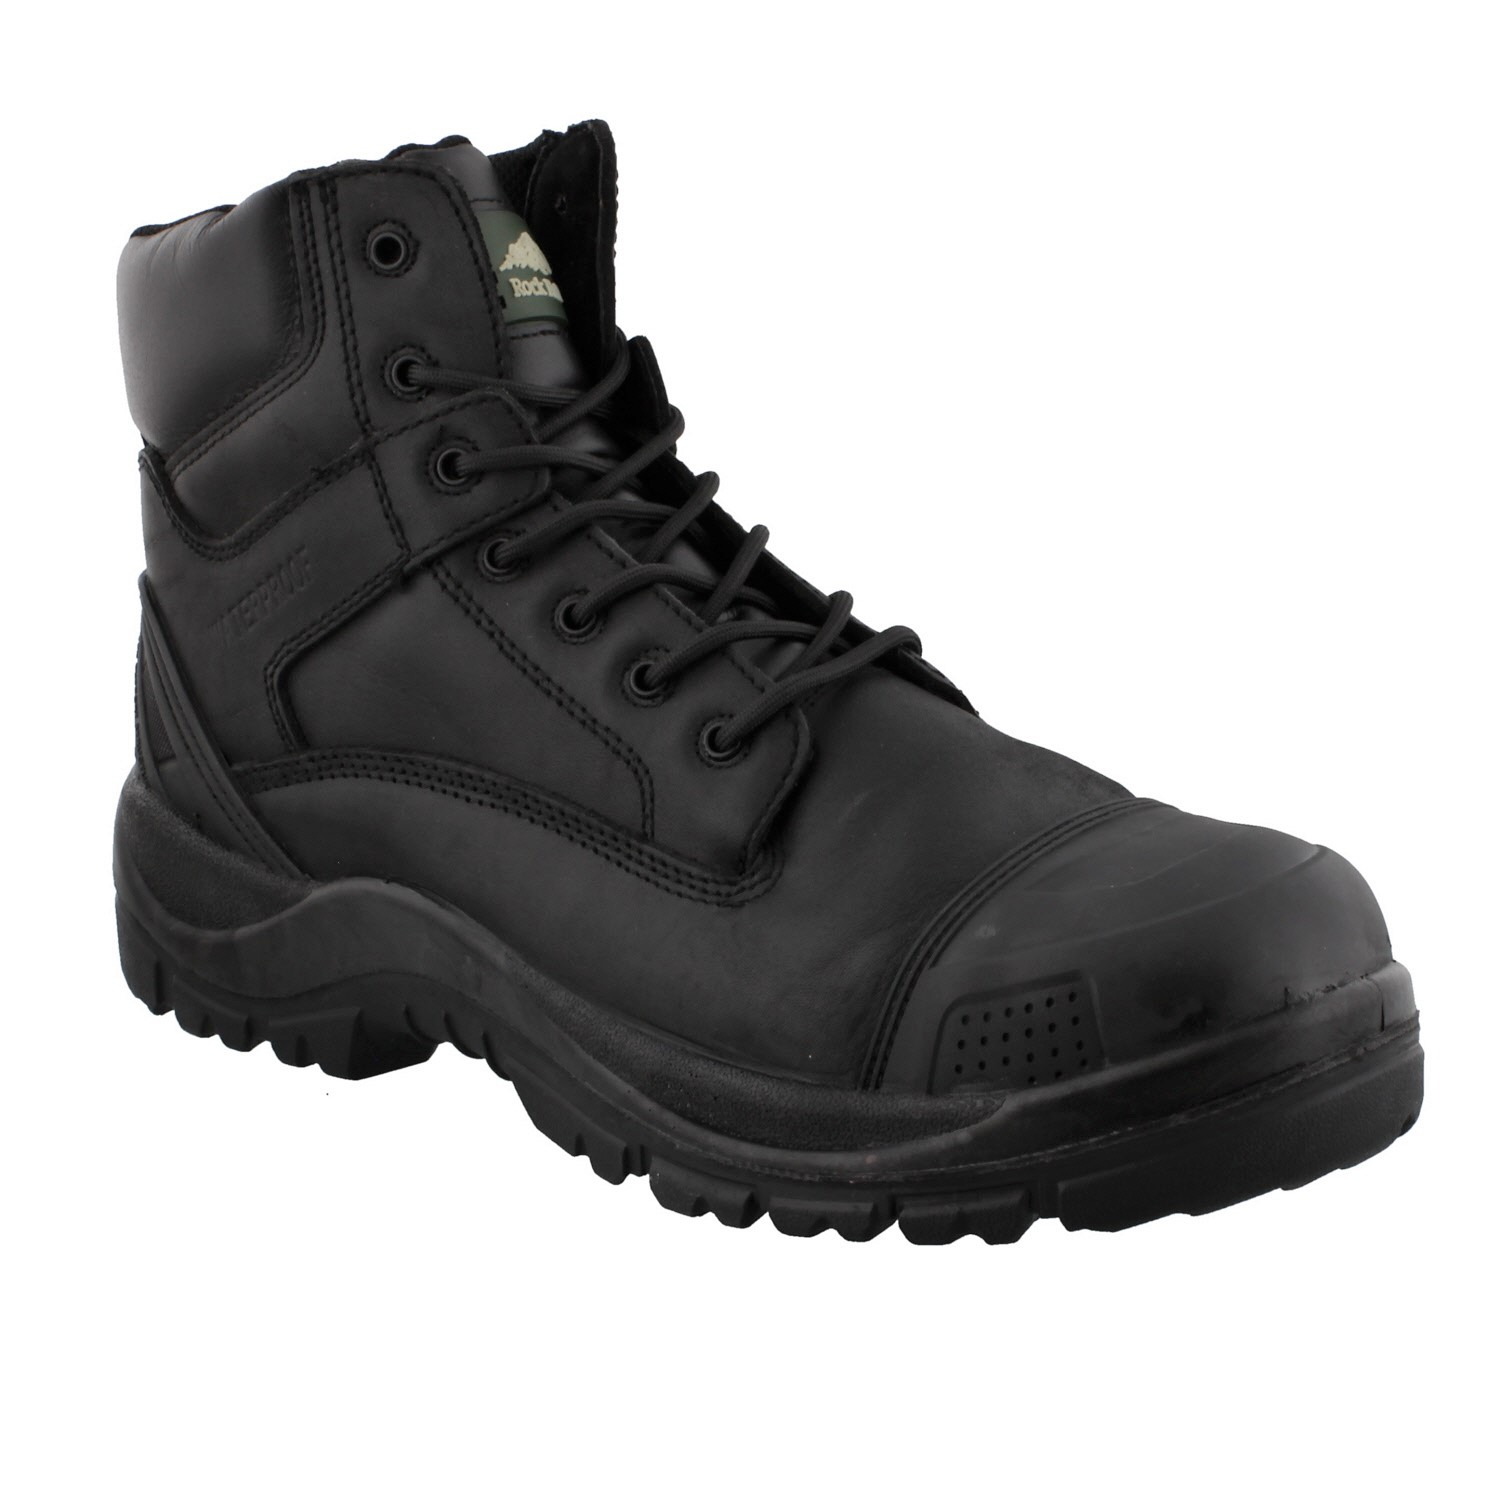 Rockfall Slate waterproof boot RF460 black